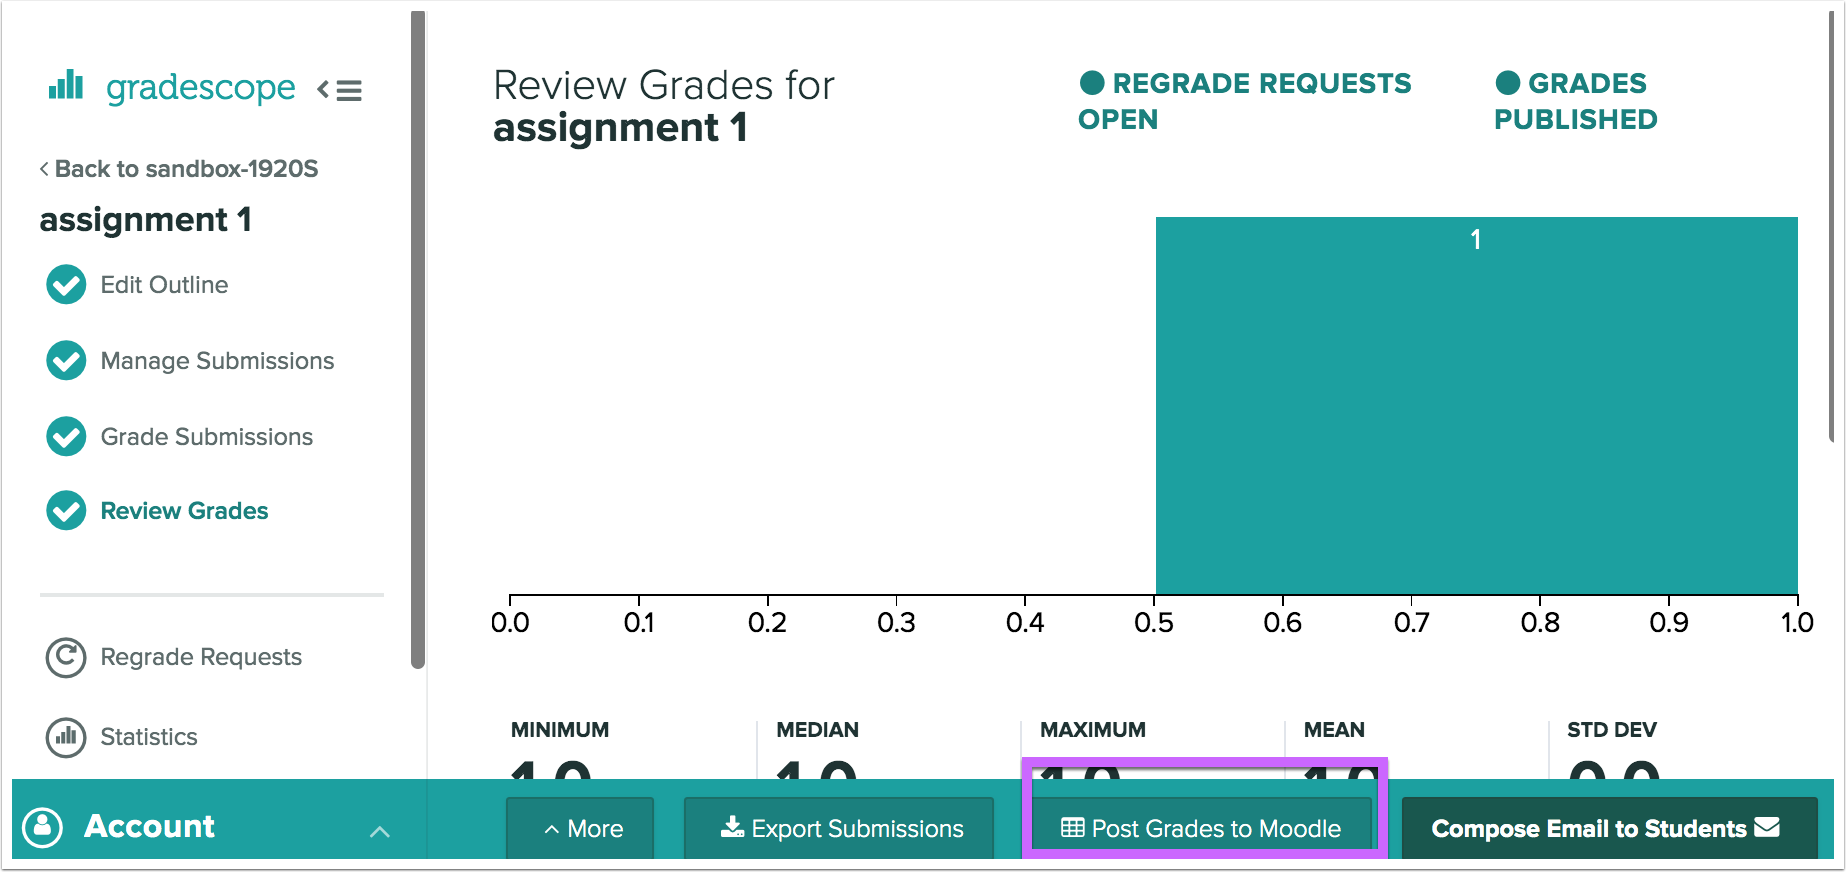 Dialog to publish Gradescope grades back to Moodle